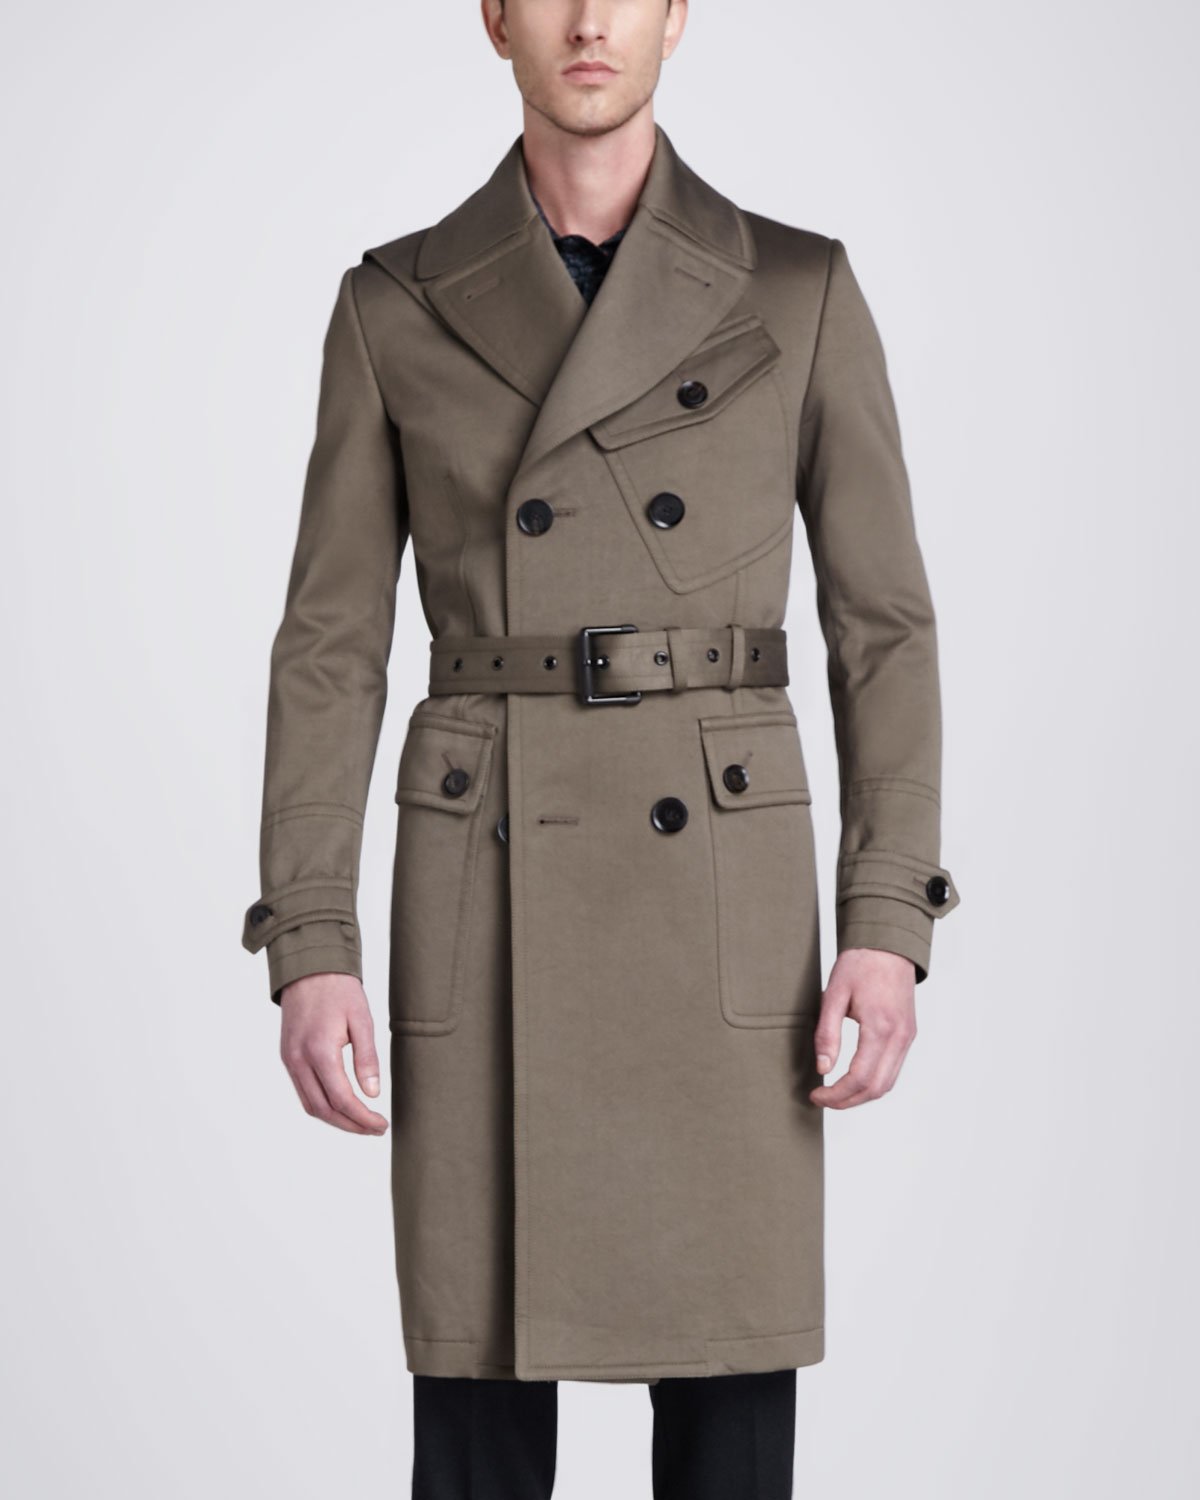 10 Men's Trench Coats for Fall 2013